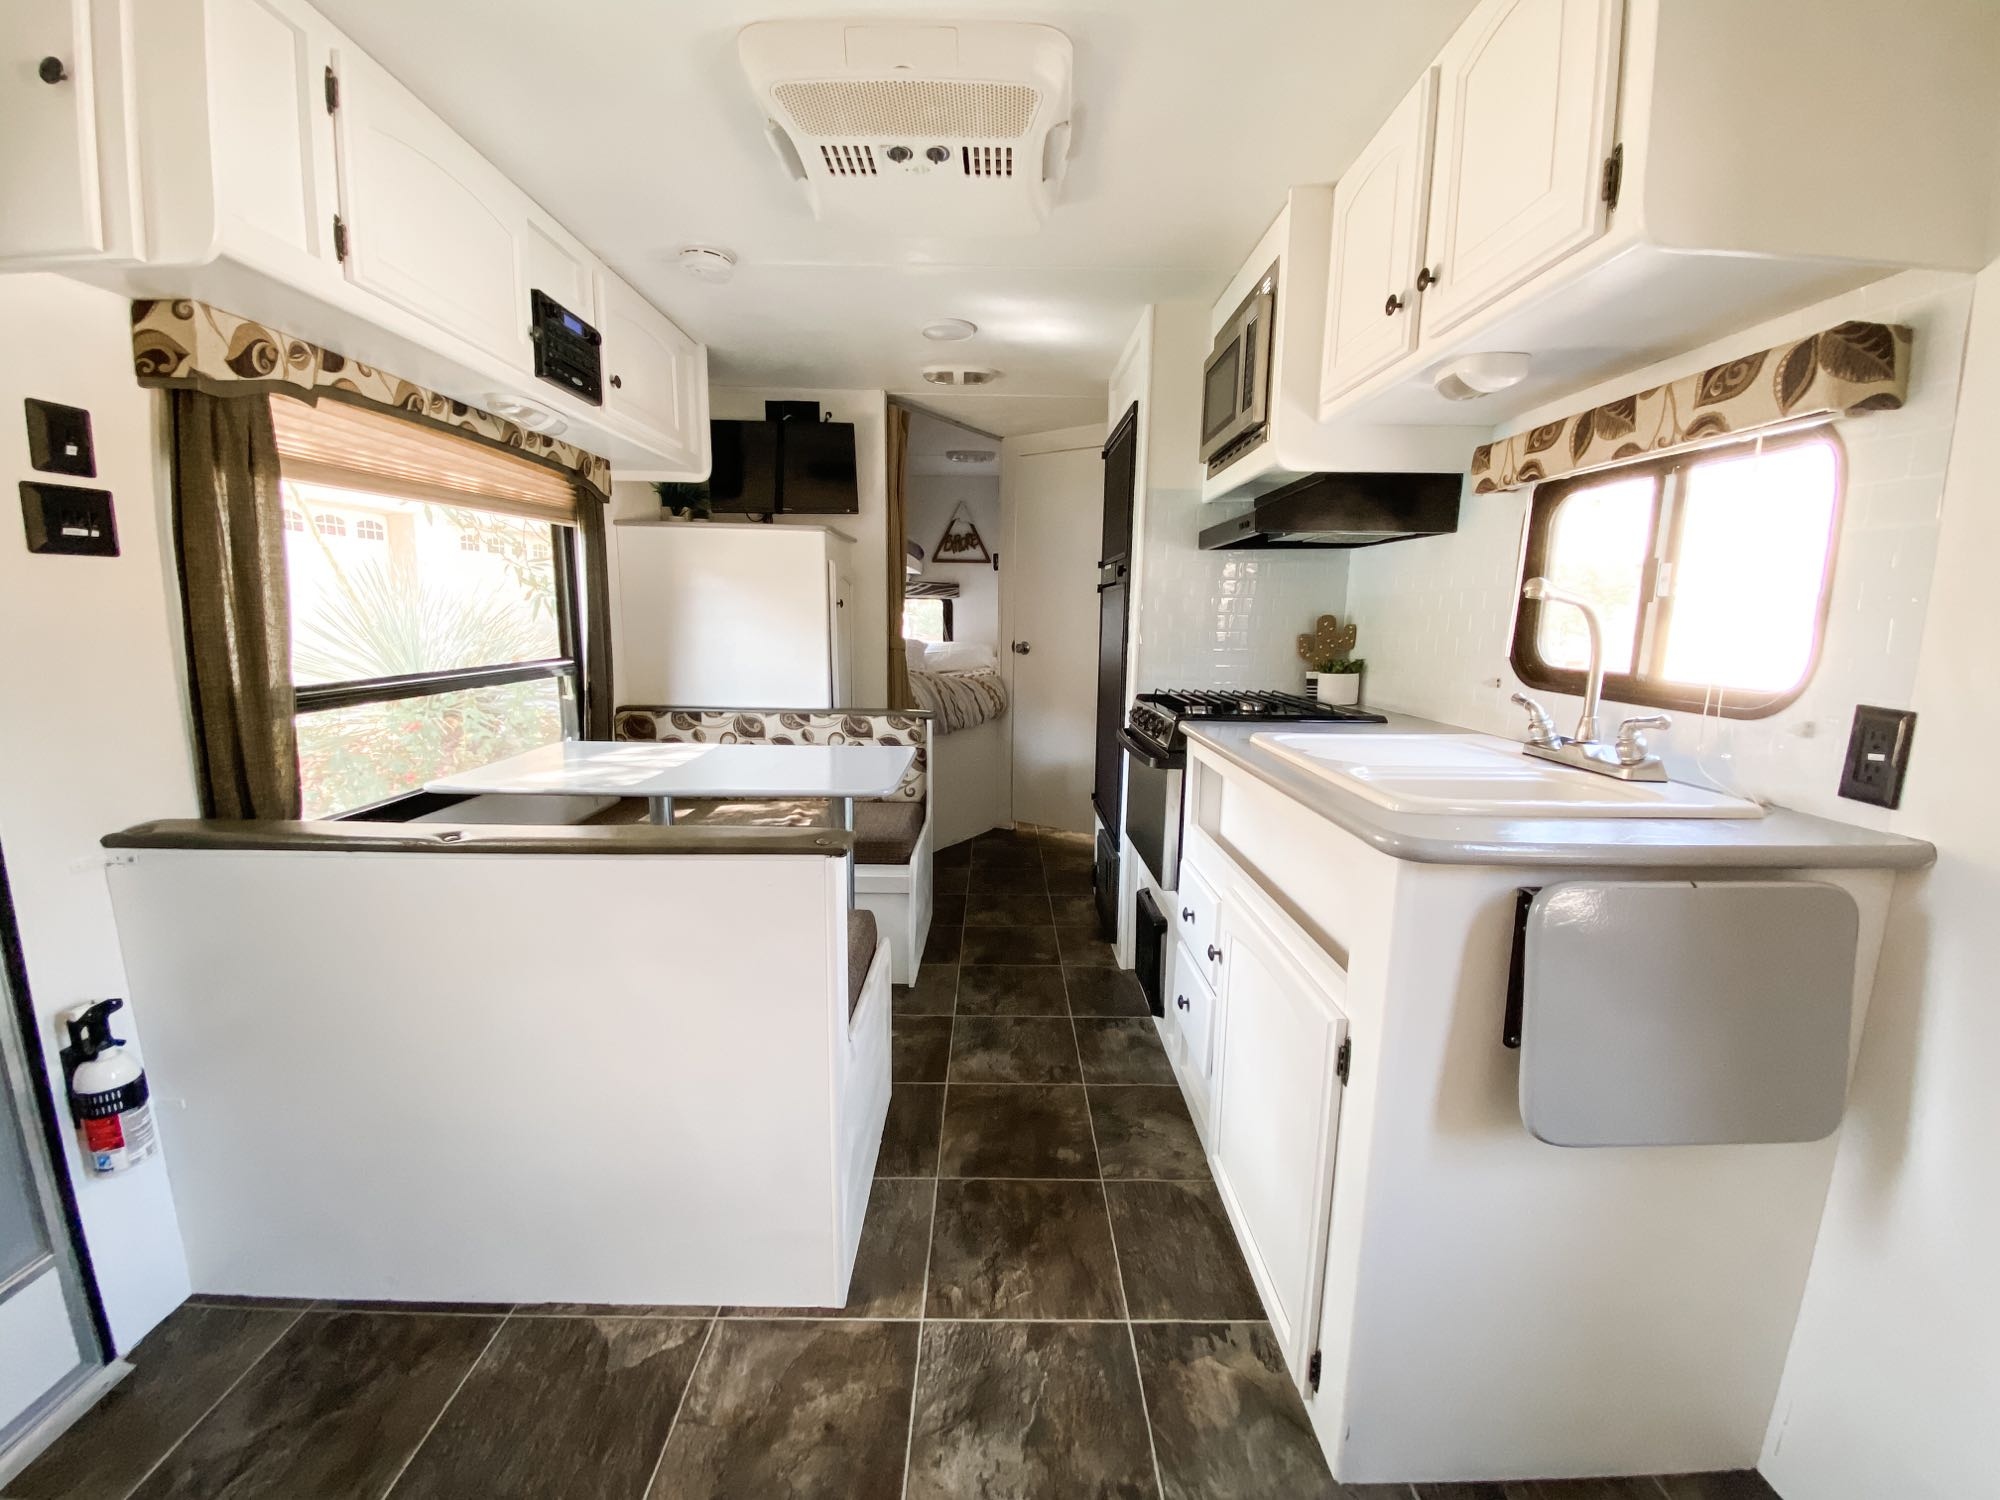 Fully equipped kitchen with double sink, microwave, stove, oven, and refrigerator.. Keystone Hideout 2014